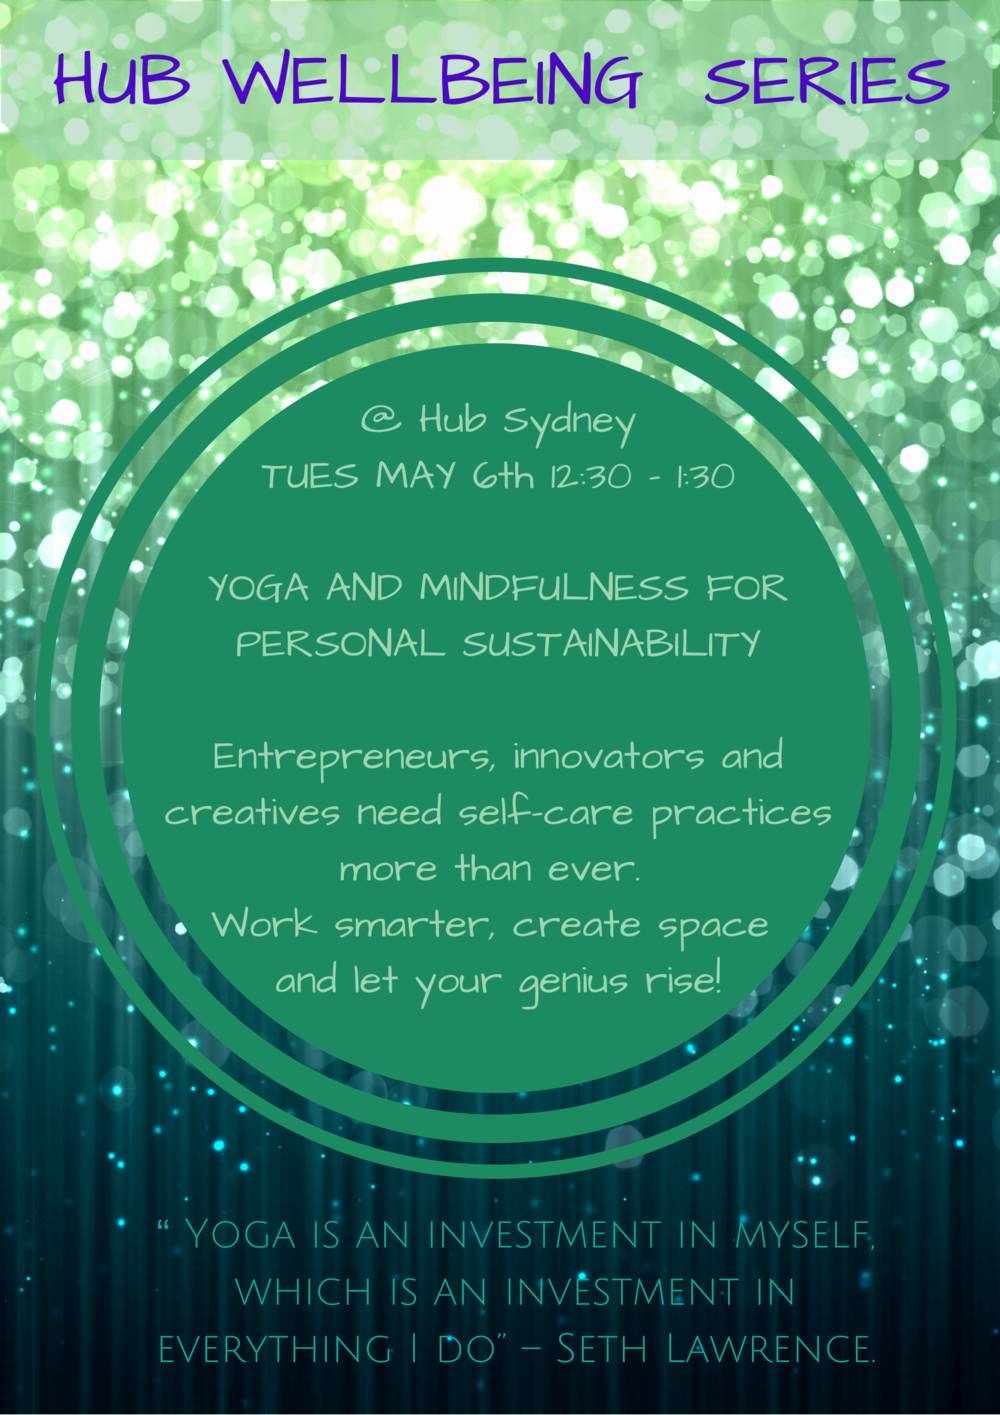 Hub Wellbeing Series v2.png